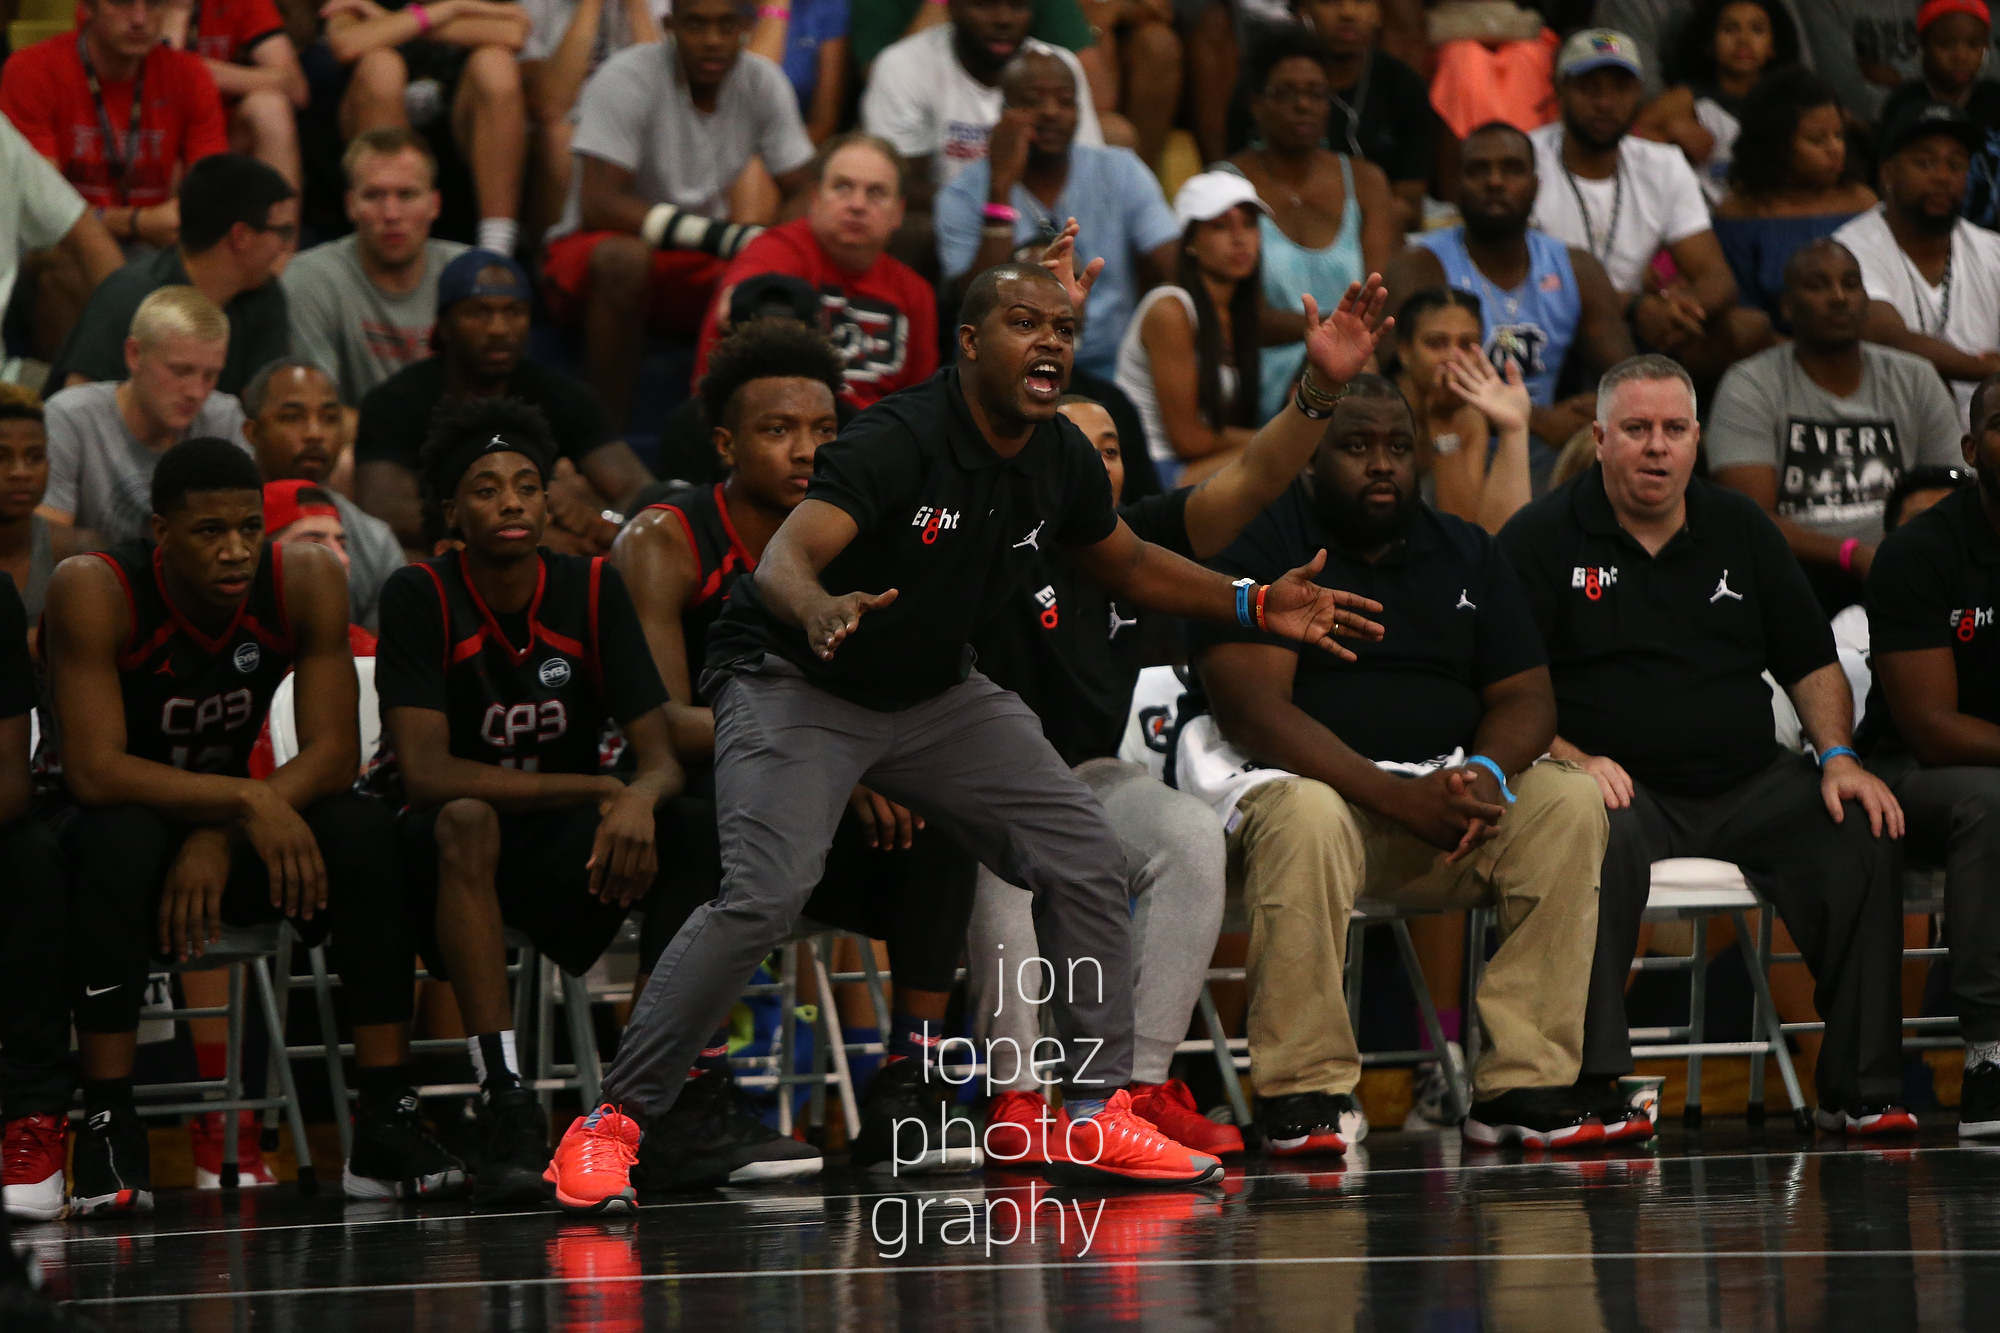 LAS VEGAS, NV. JULY 21, 2016. The Eight. Jon Adams, head coach of Team CP3 shouts. (Mandatory photo credit: Jon Lopez/Nike).